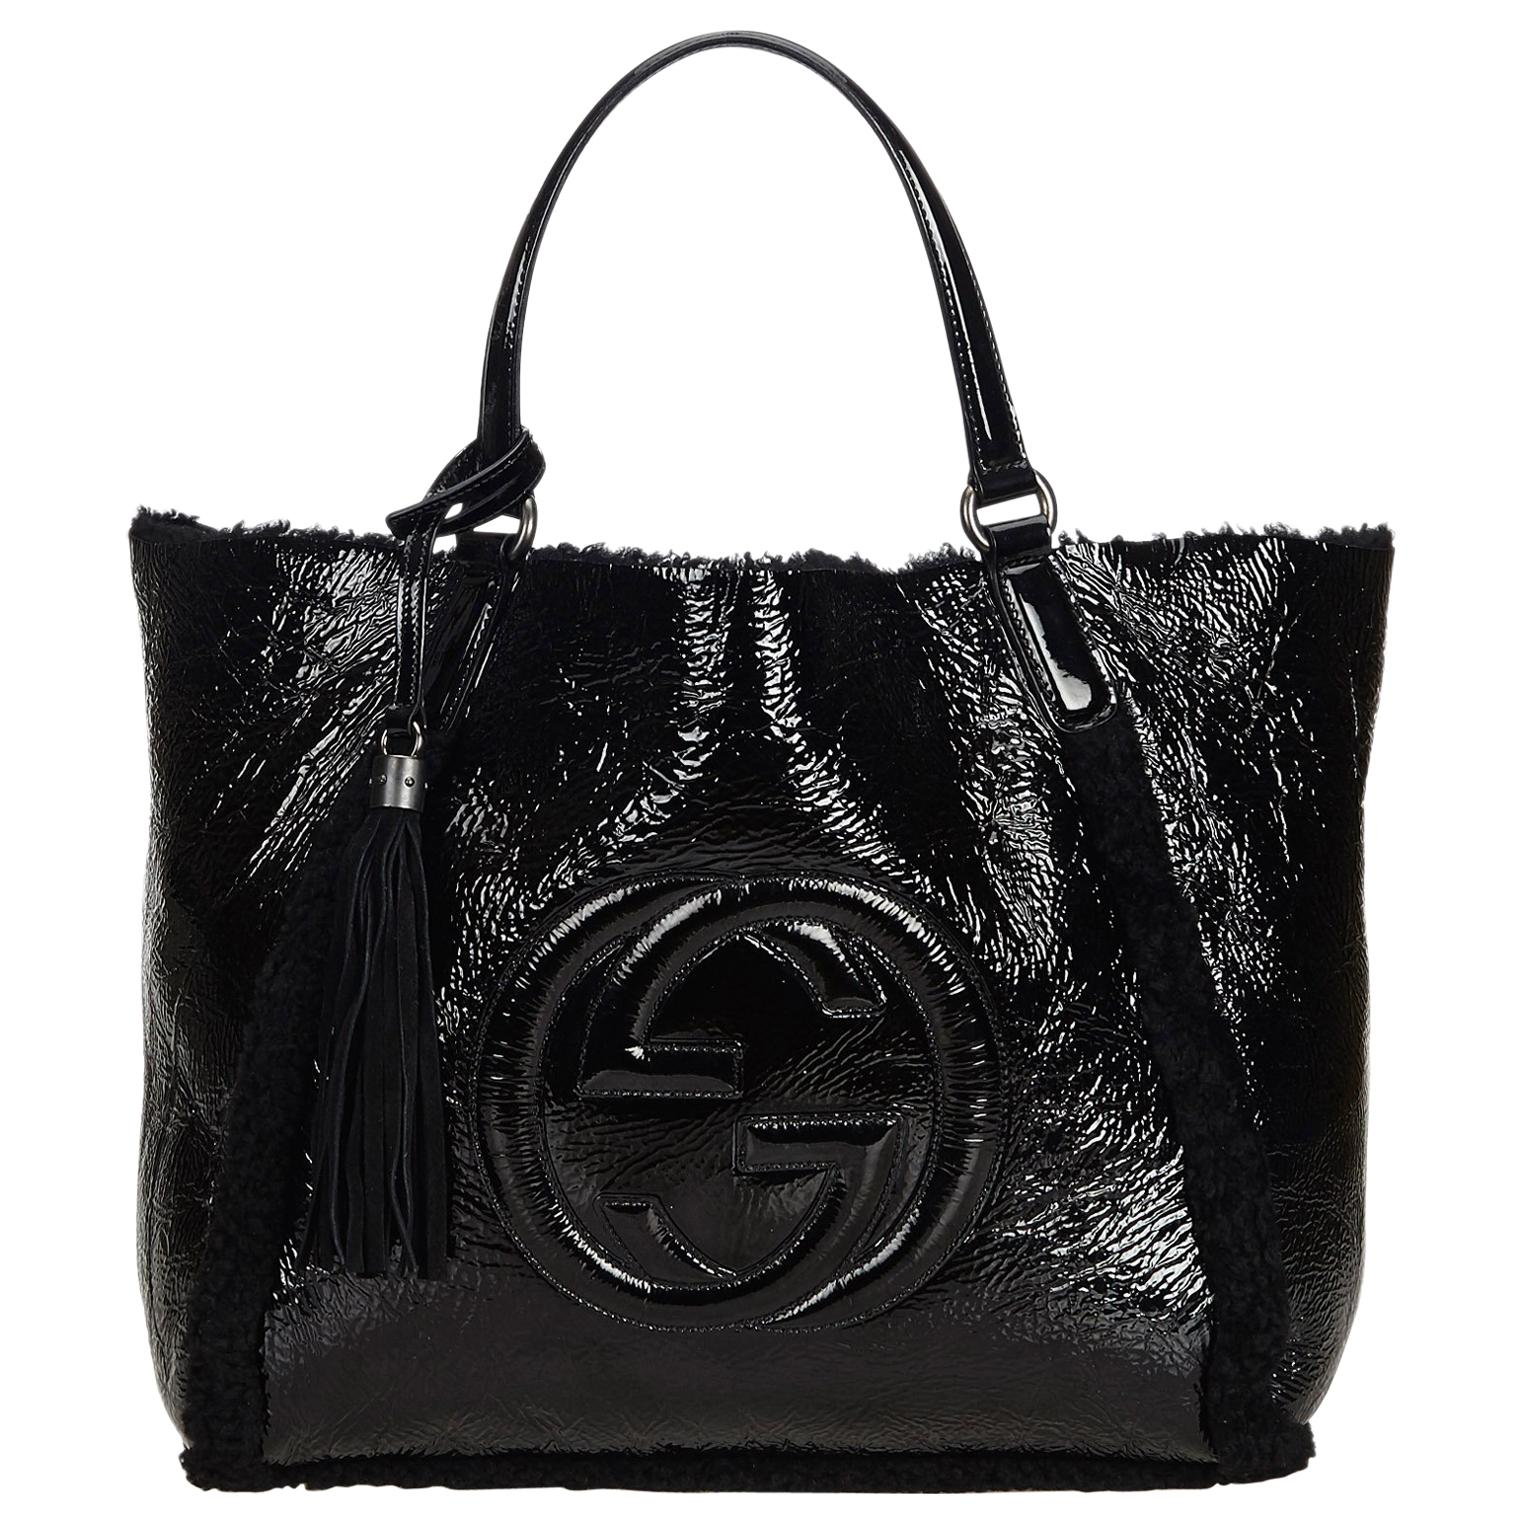 e77994dc6a13 Vintage Gucci Tote Bags - 314 For Sale at 1stdibs